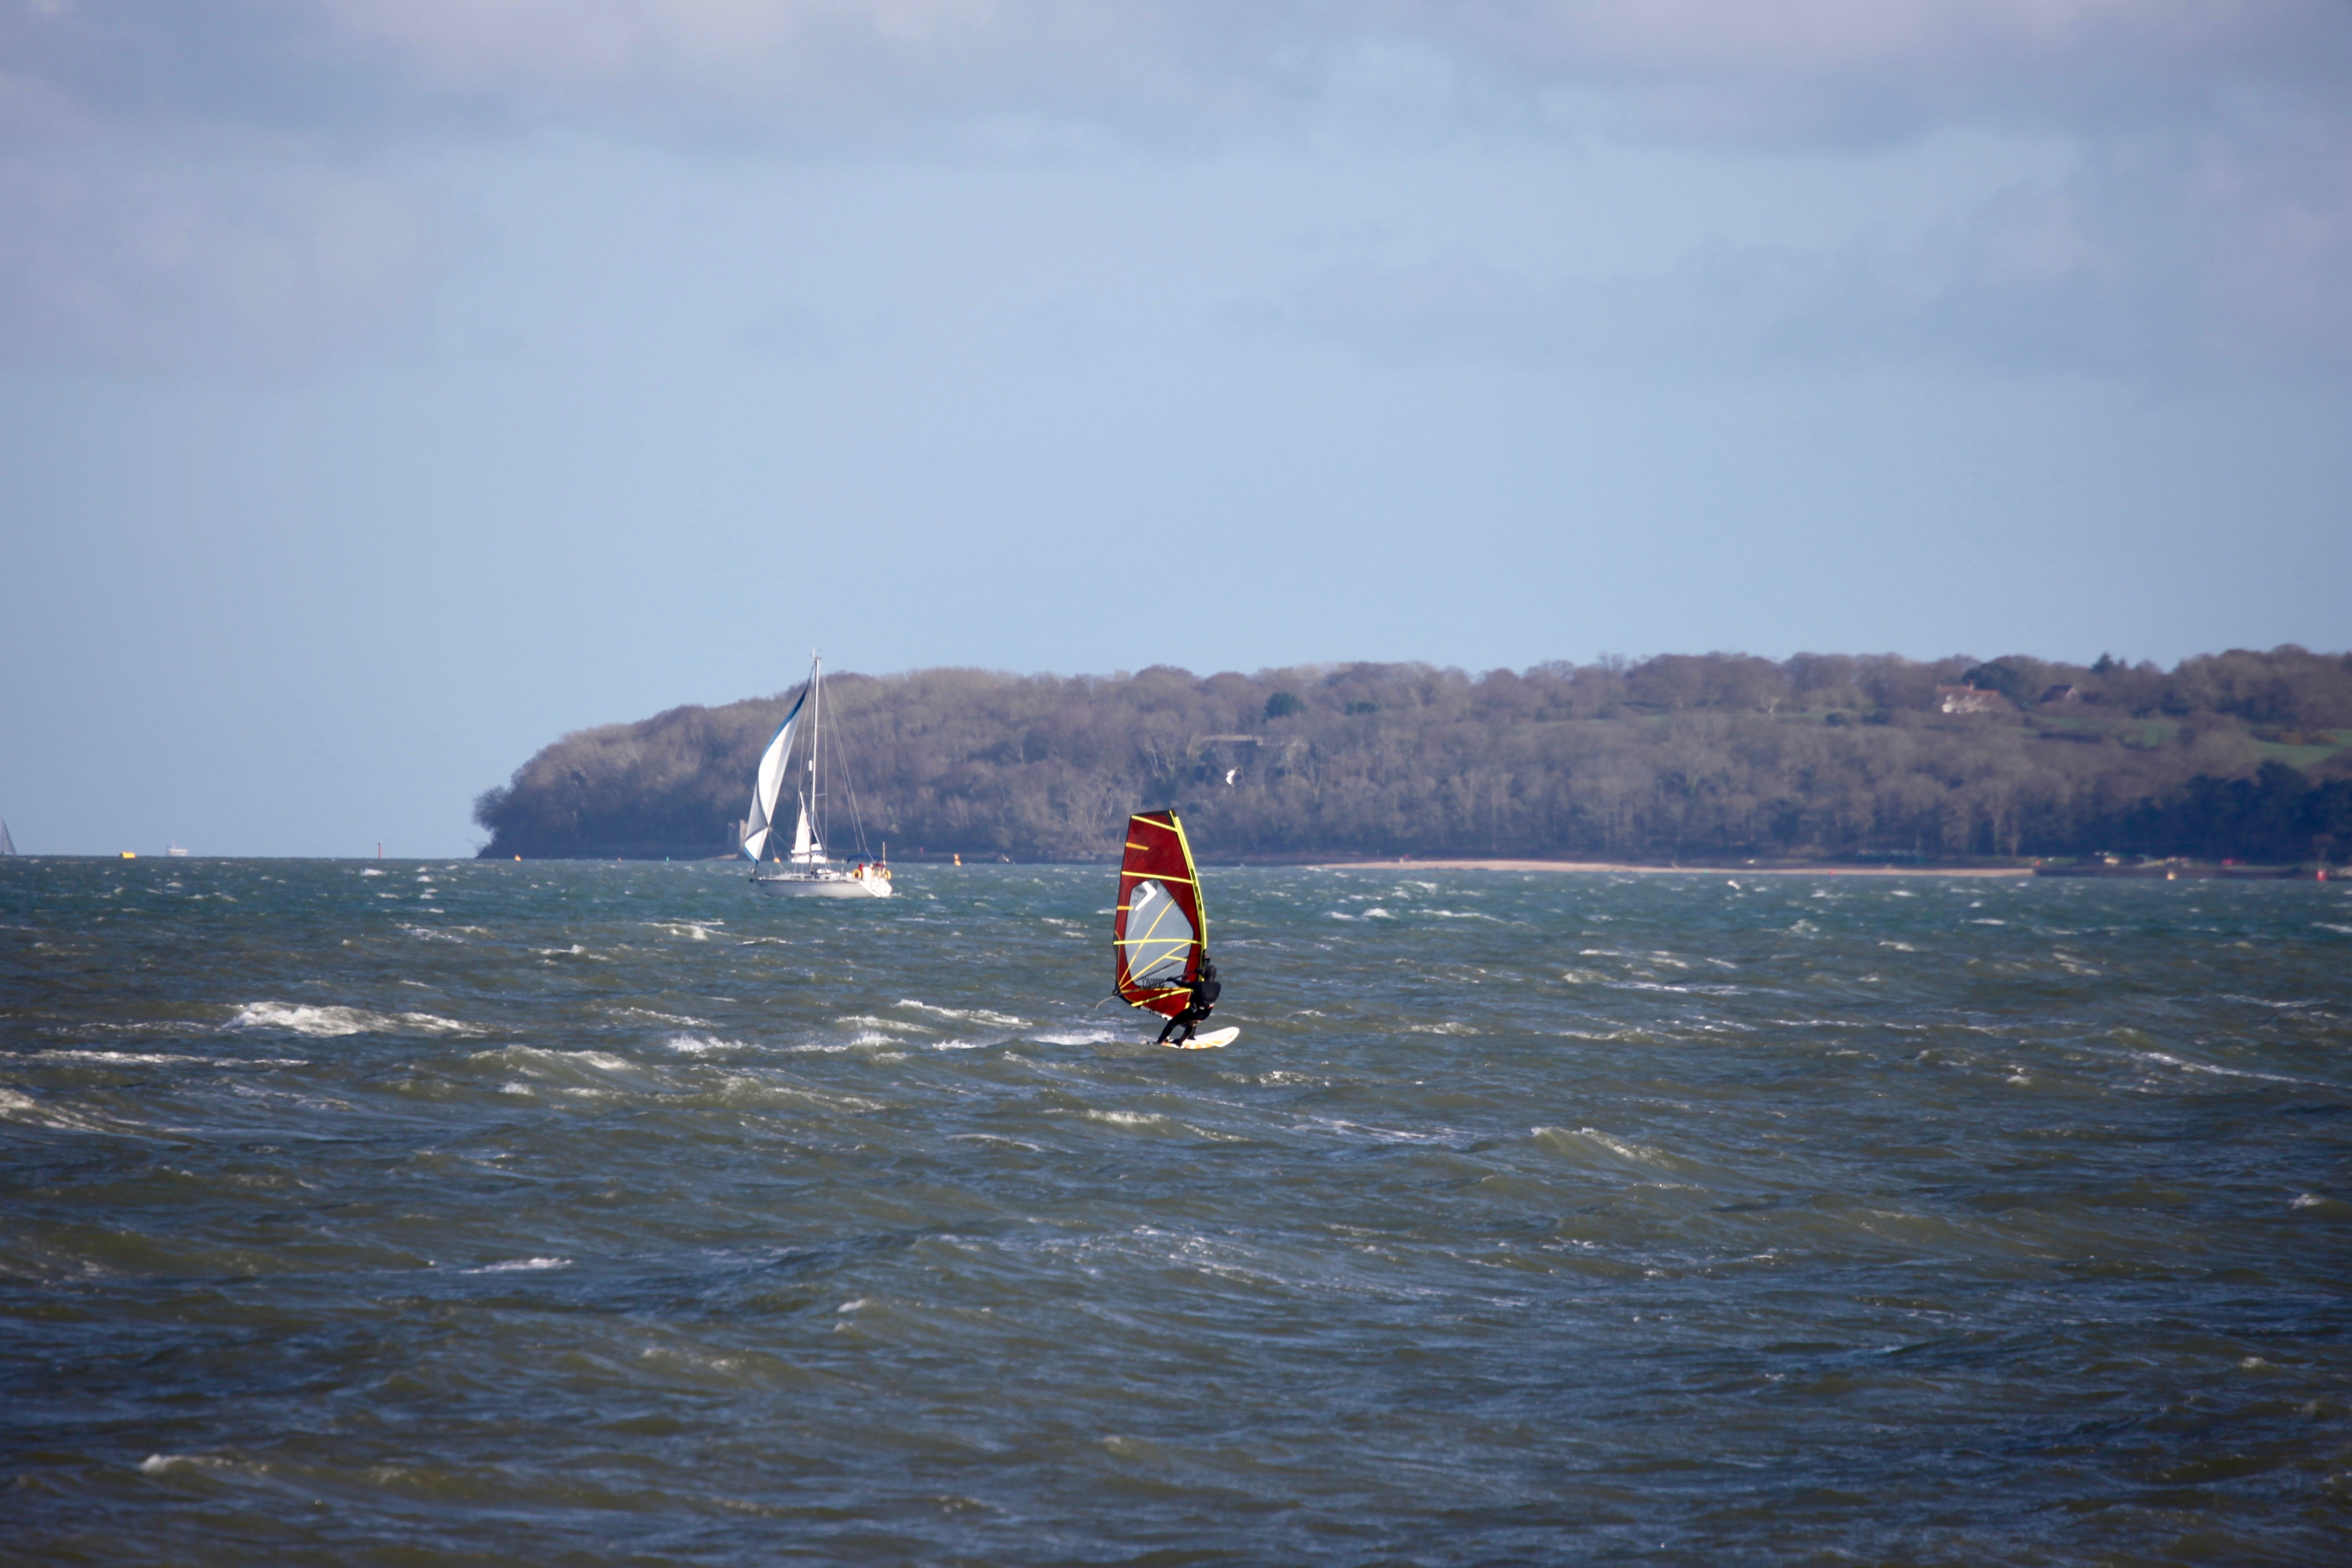 Sailboarder, yacht and Isle of Wight